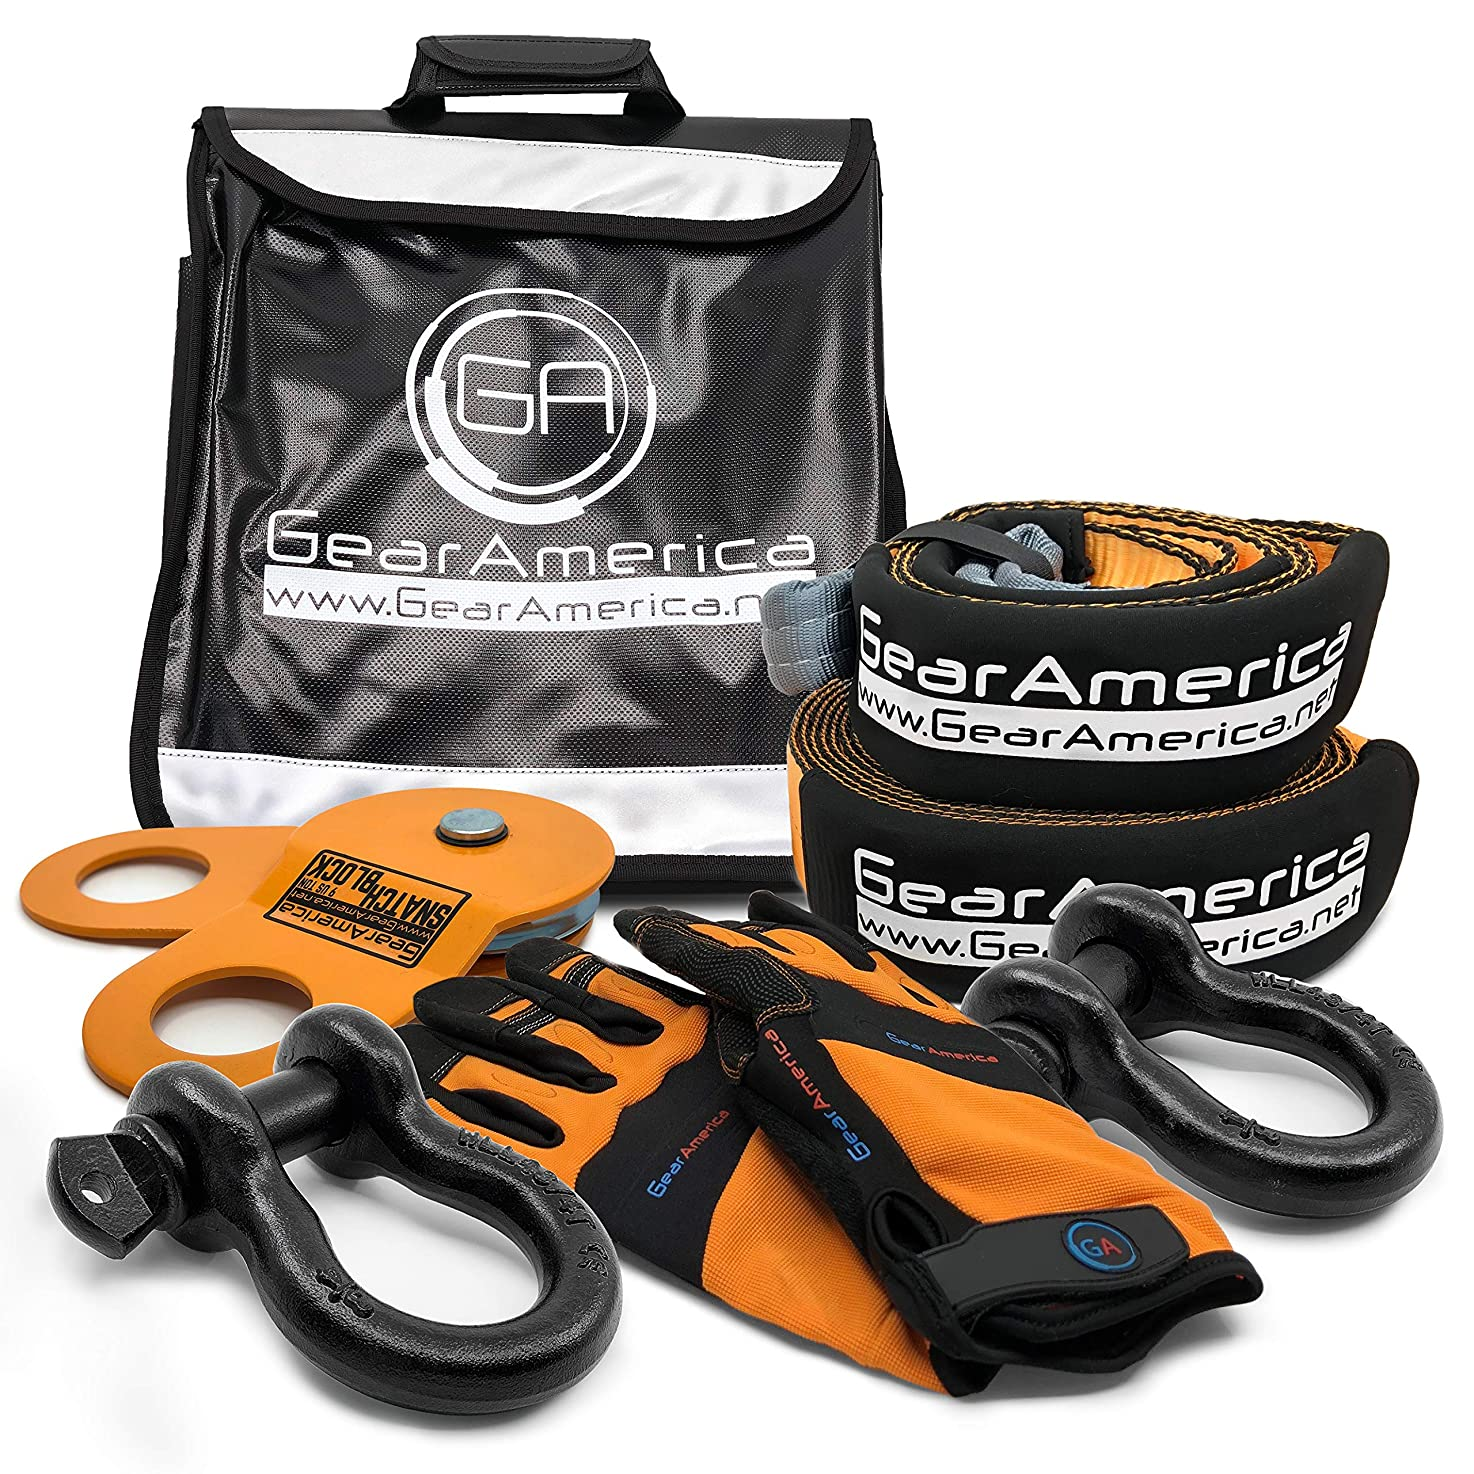 GearAmerica Off-Road Recovery Kit | Tow Strap + Tree Saver + Heavy Duty Snatch Block Pulley + D-Ring Shackles + Winch Line Dampener Bag + Recovery Gloves | Ultimate 4x4 Winching & Rigging Accessories prefsftbbouxb2